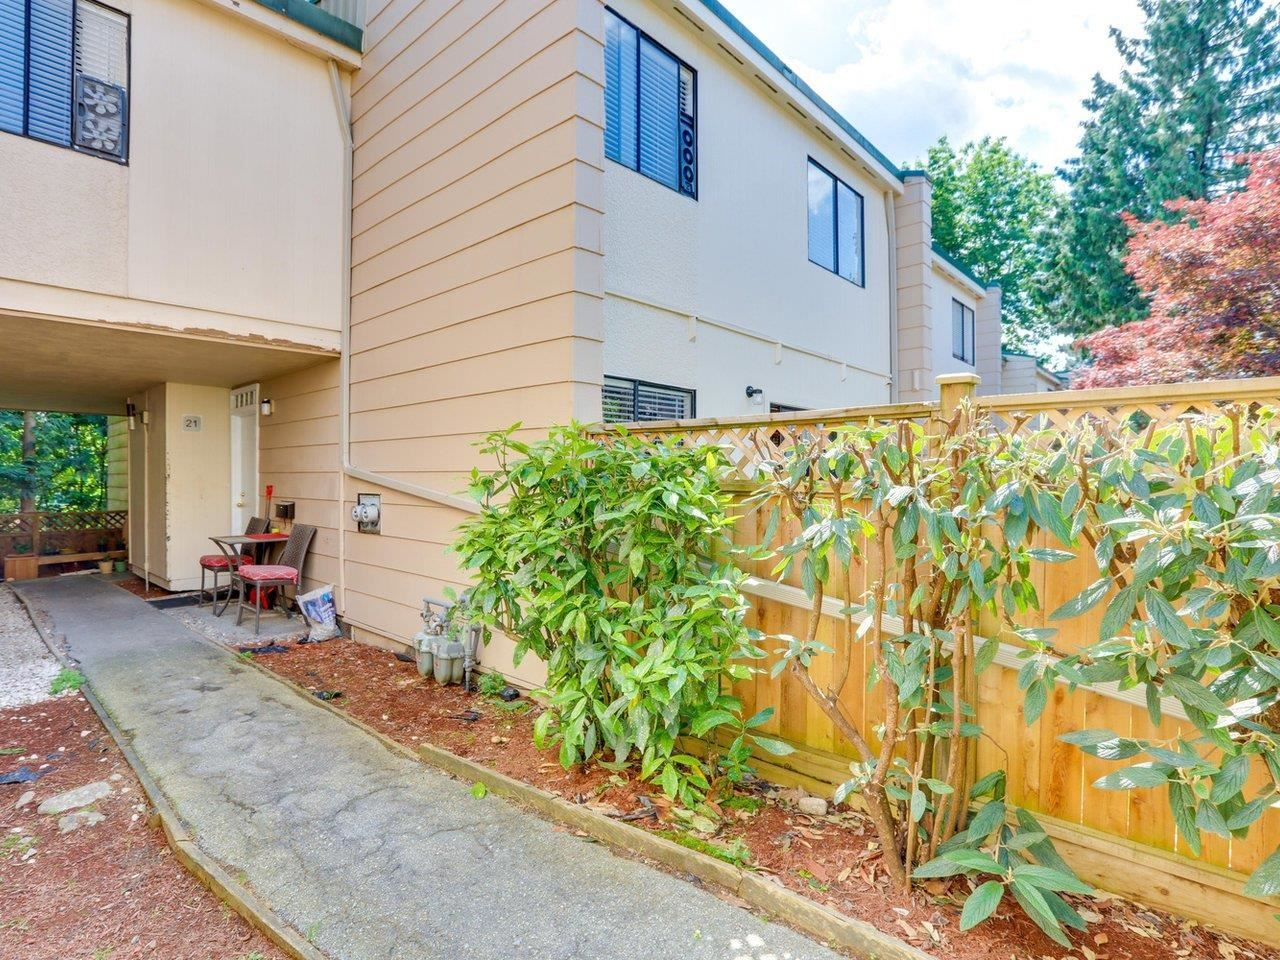 """Main Photo: 21 10585 153 Street in Surrey: Guildford Townhouse for sale in """"Guildford Mews"""" (North Surrey)  : MLS®# R2593242"""